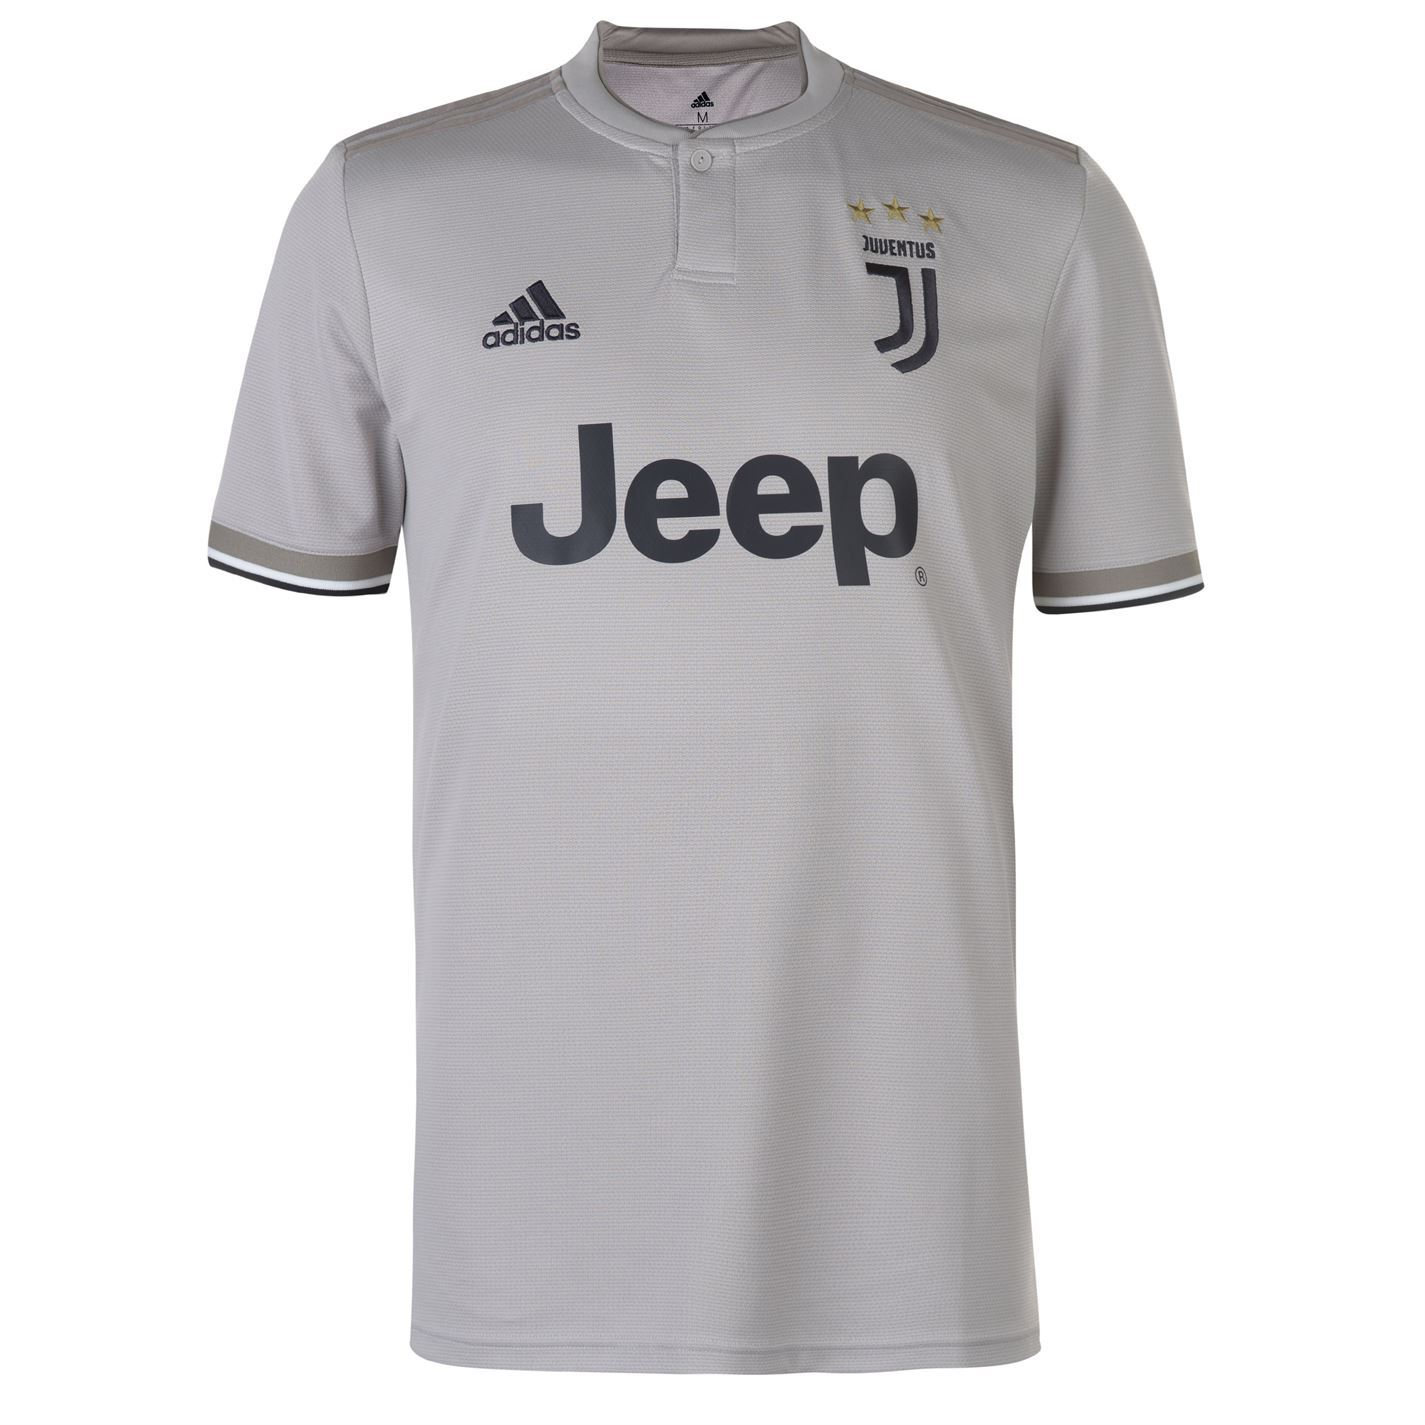 f5490eb97 ... adidas Juventus Away Jersey 2018 2019 Mens Grey Football Soccer Fan  Shirt Top ...